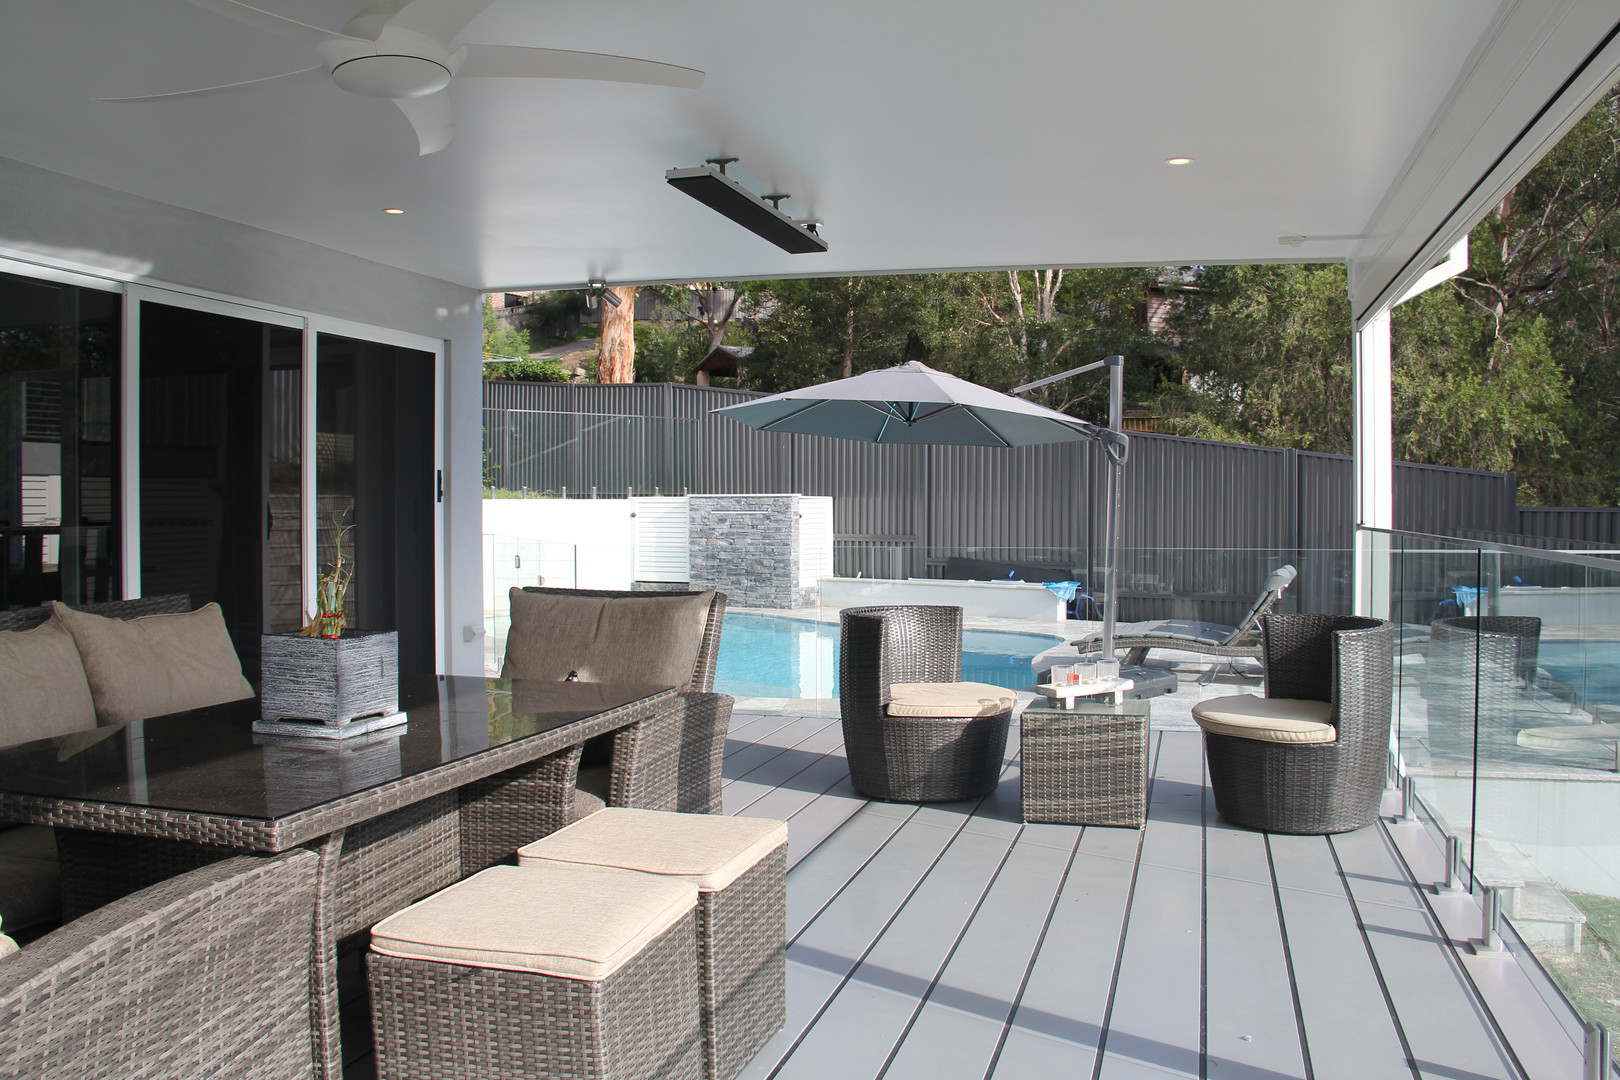 Outdoor living renovation by Shire Build